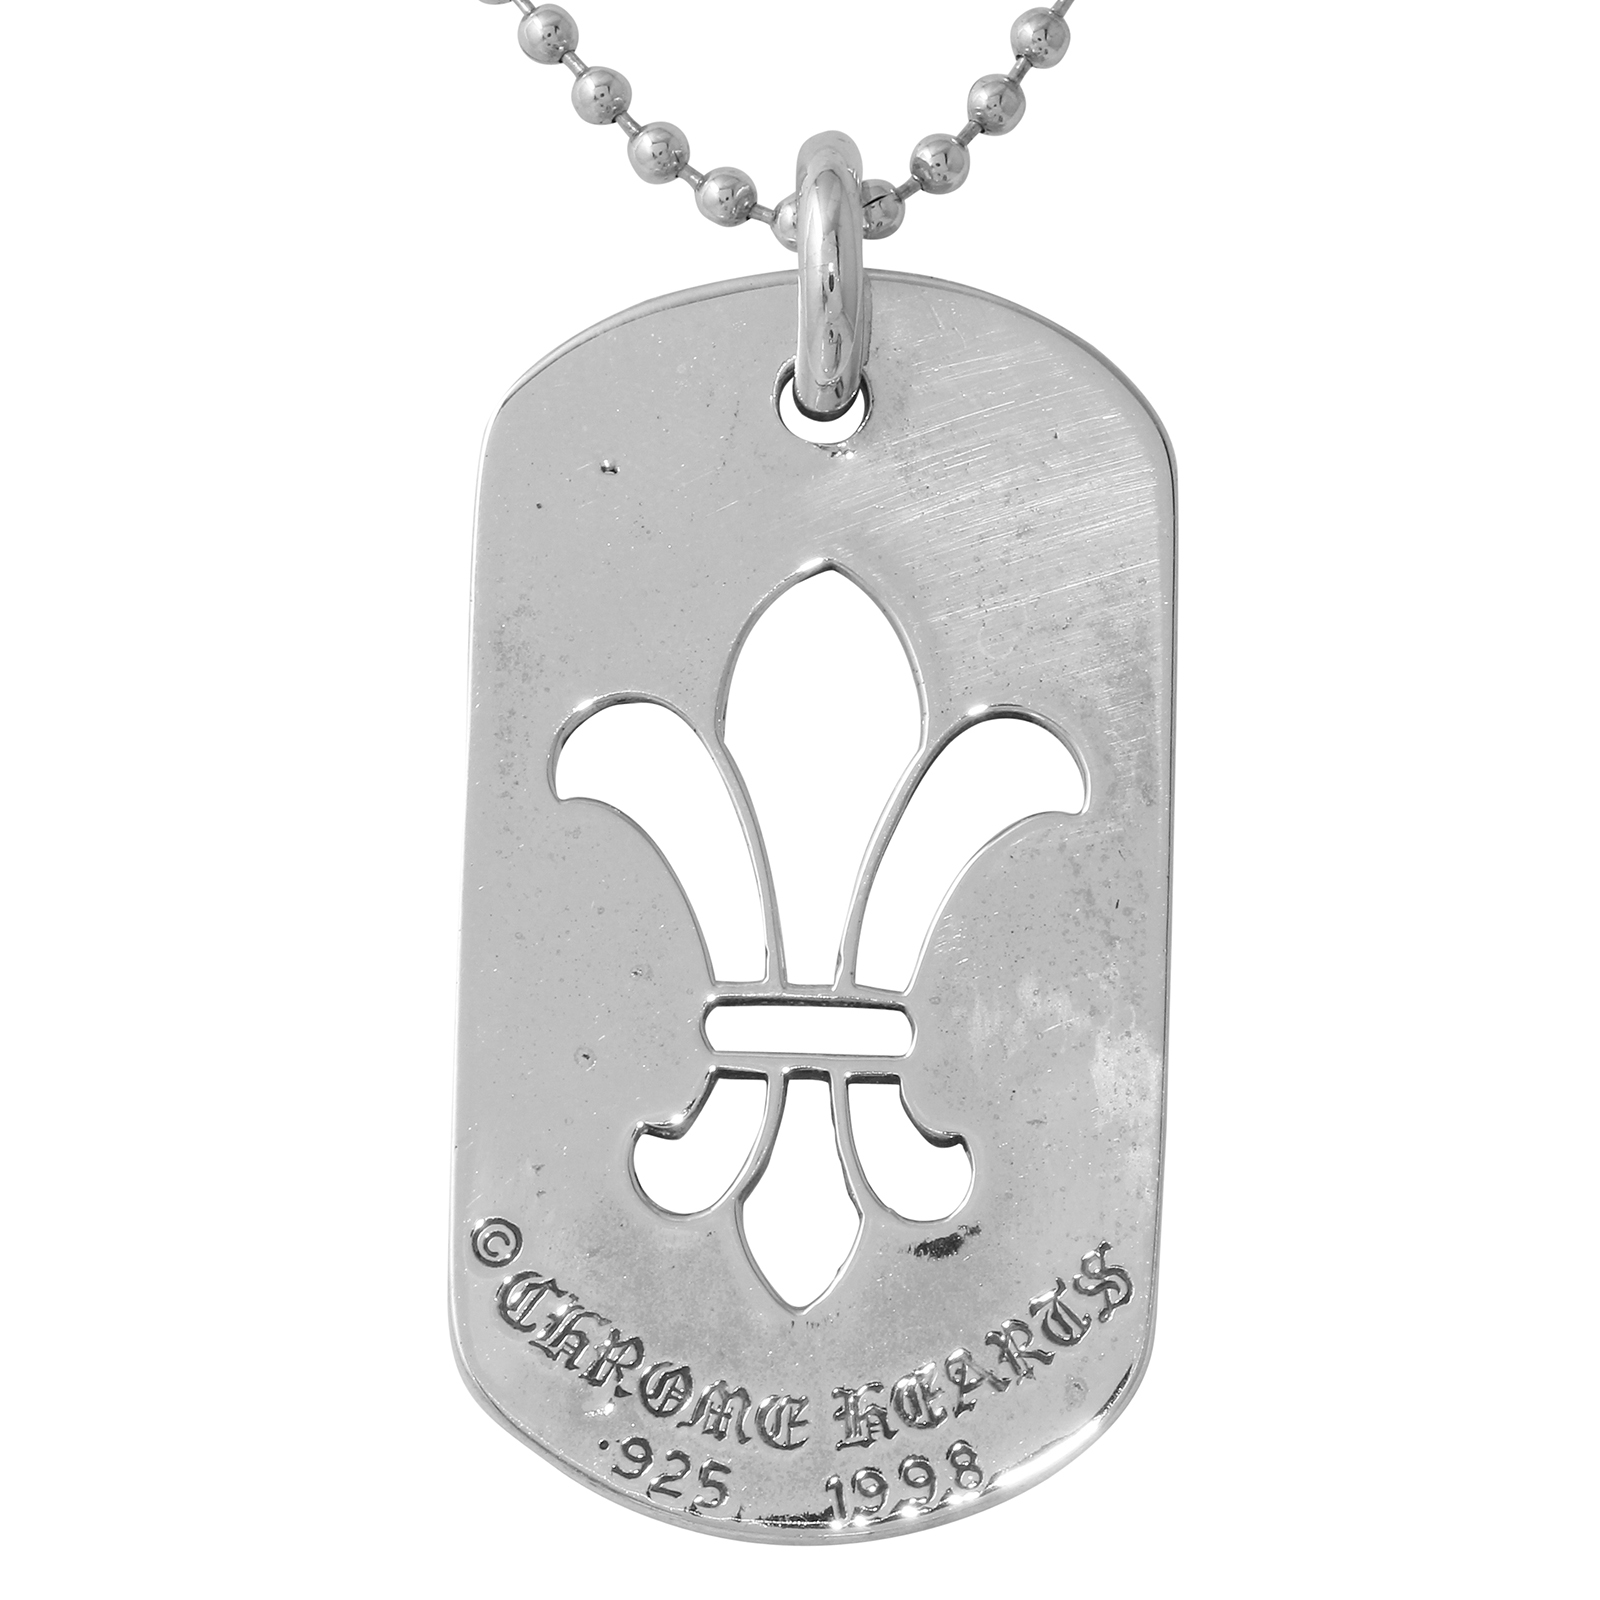 8f8815c4ad9d Chrome Hearts Sterling Silver Dog Tag Necklace 30